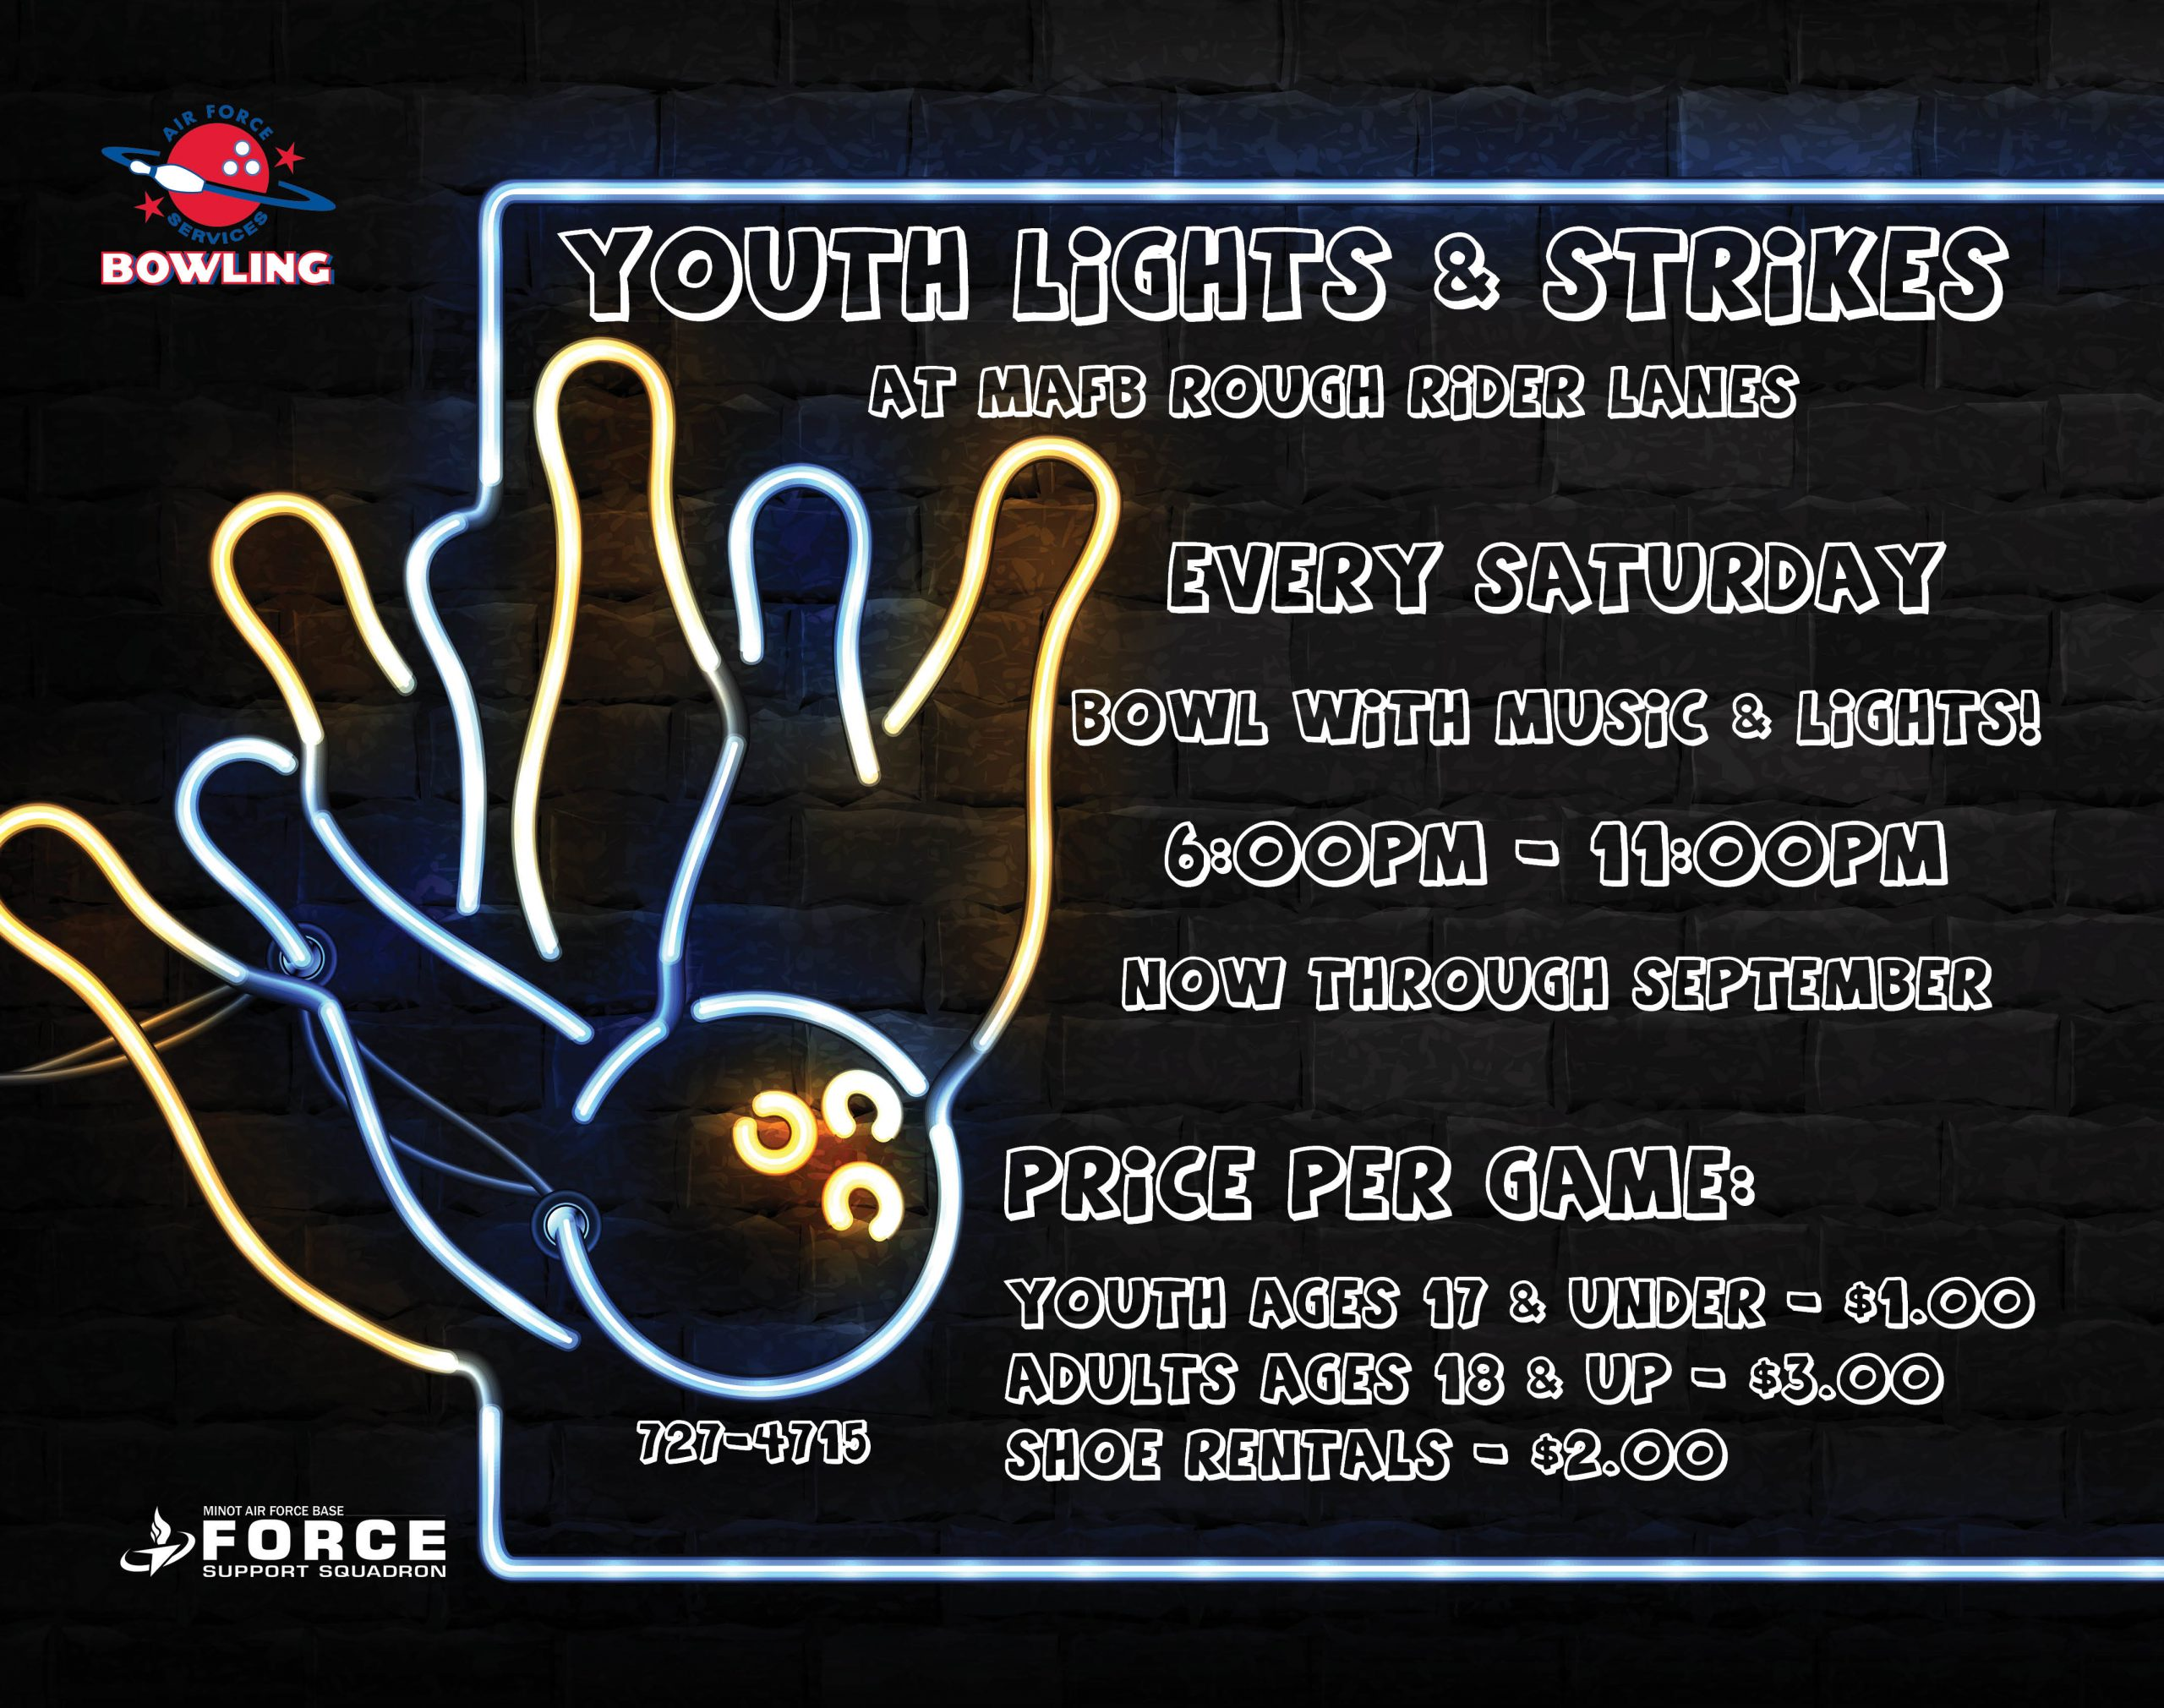 Youth Lights & Strikes